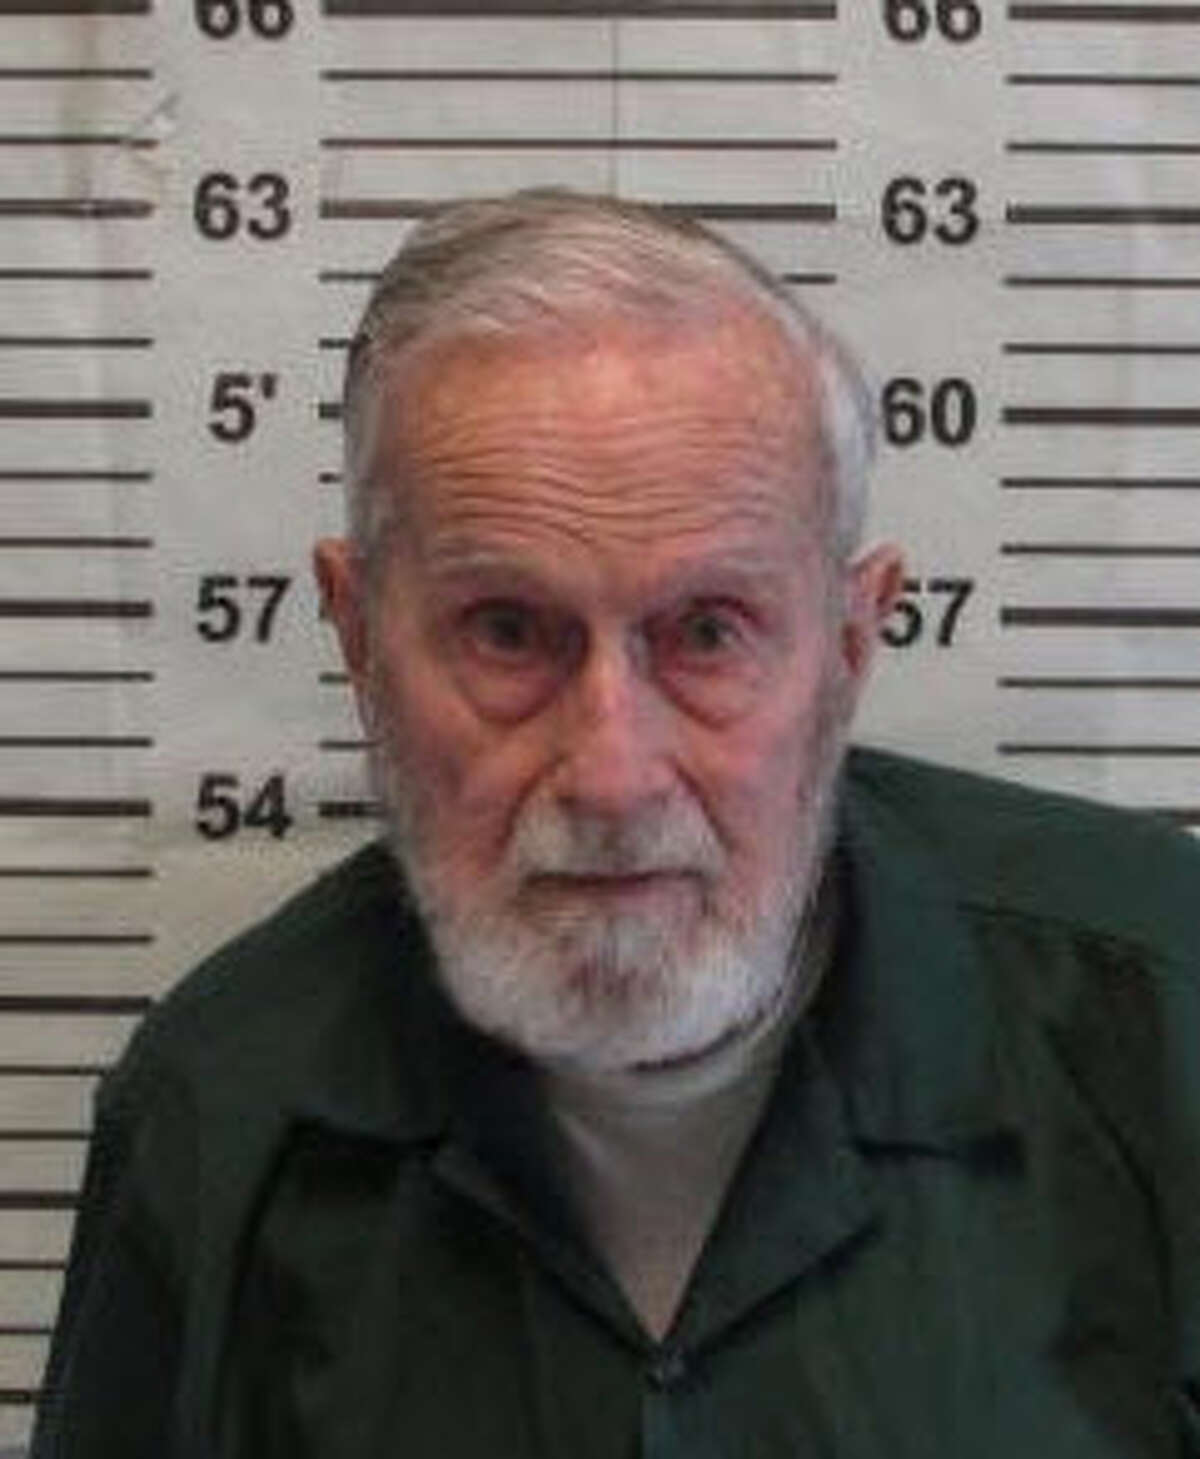 James Moore was convicted of murder in 1963 and sentenced to 20 years to life in state prison. He is currently incarcerated at Coxsackie Correctional Facility.